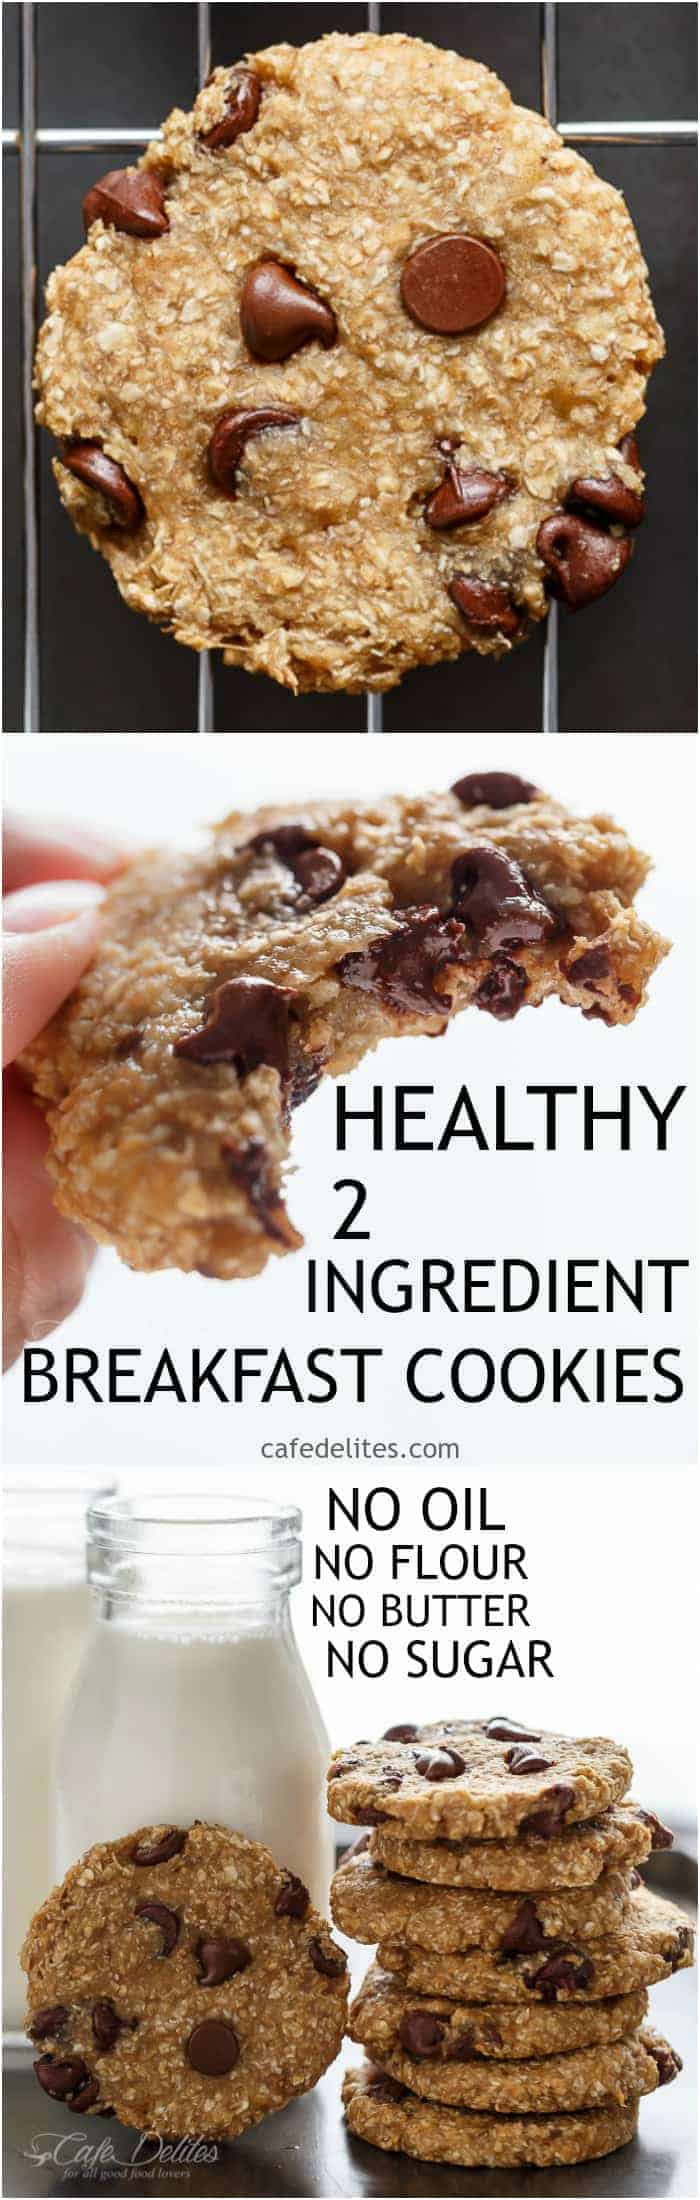 Healthy 2 ingredient breakfast cookies cafe delites no flour no oil no refined sugars non fat weight watchers friendly forumfinder Image collections